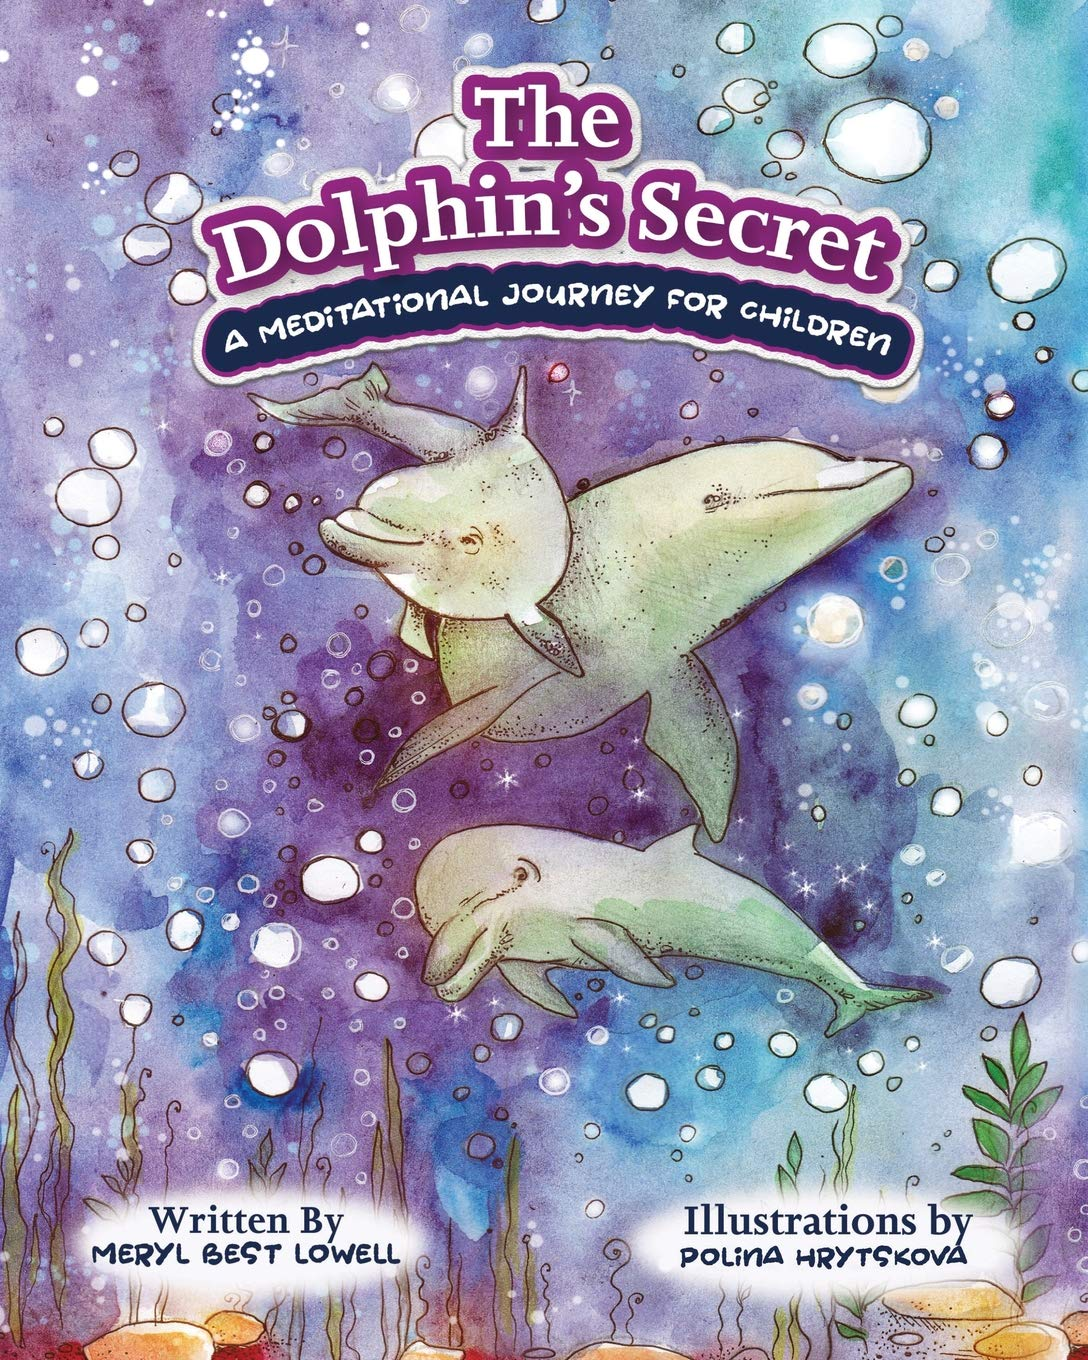 dolphin day book oceans editation kids children givveaway free books illustrated watercolor sweet learning teaching review pr friendly blog secret sea wildlife nature planet